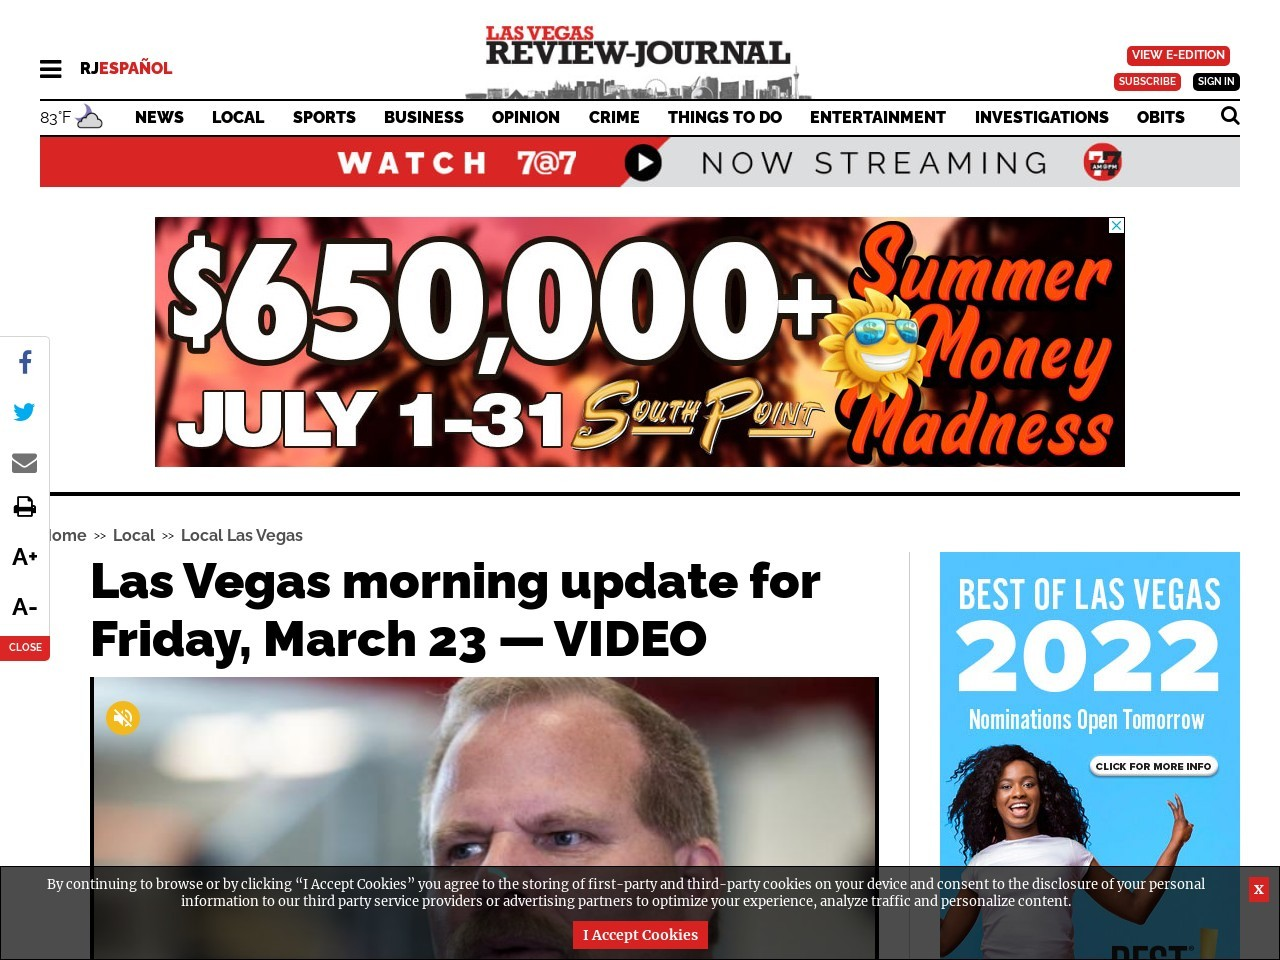 Las Vegas morning update for Friday, March 23 — VIDEO